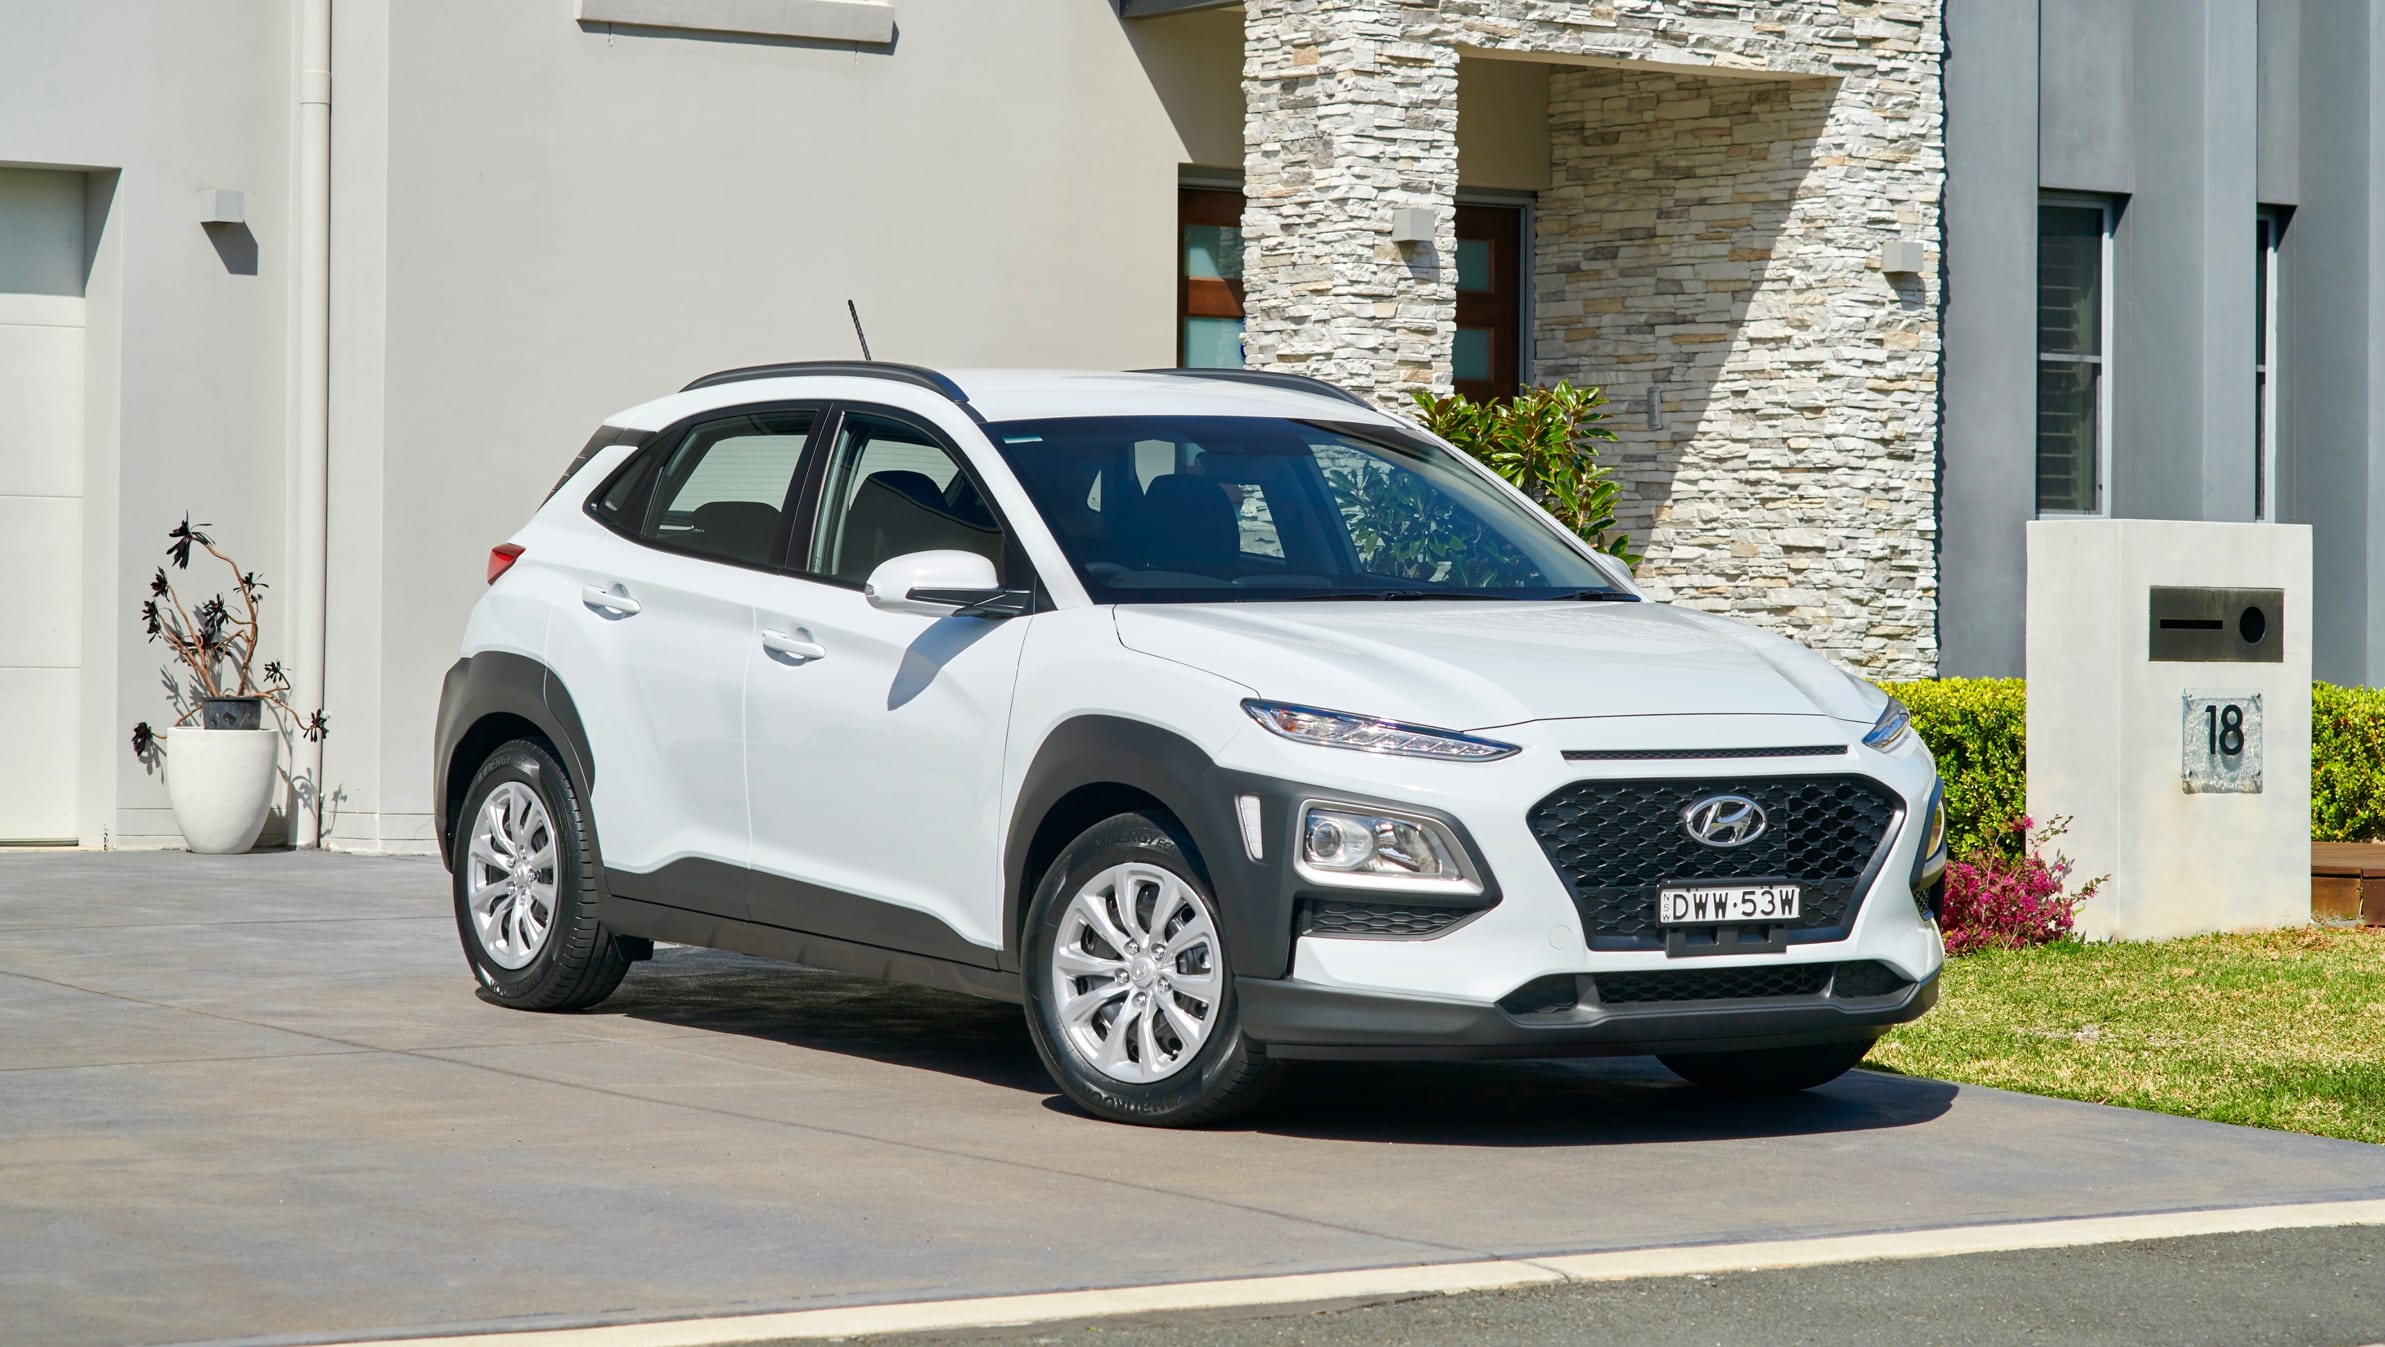 New Hyundai Kona 2020 Pricing And Spec Detailed Higher Price For Mazda Cx 30 Rival Car News Carsguide